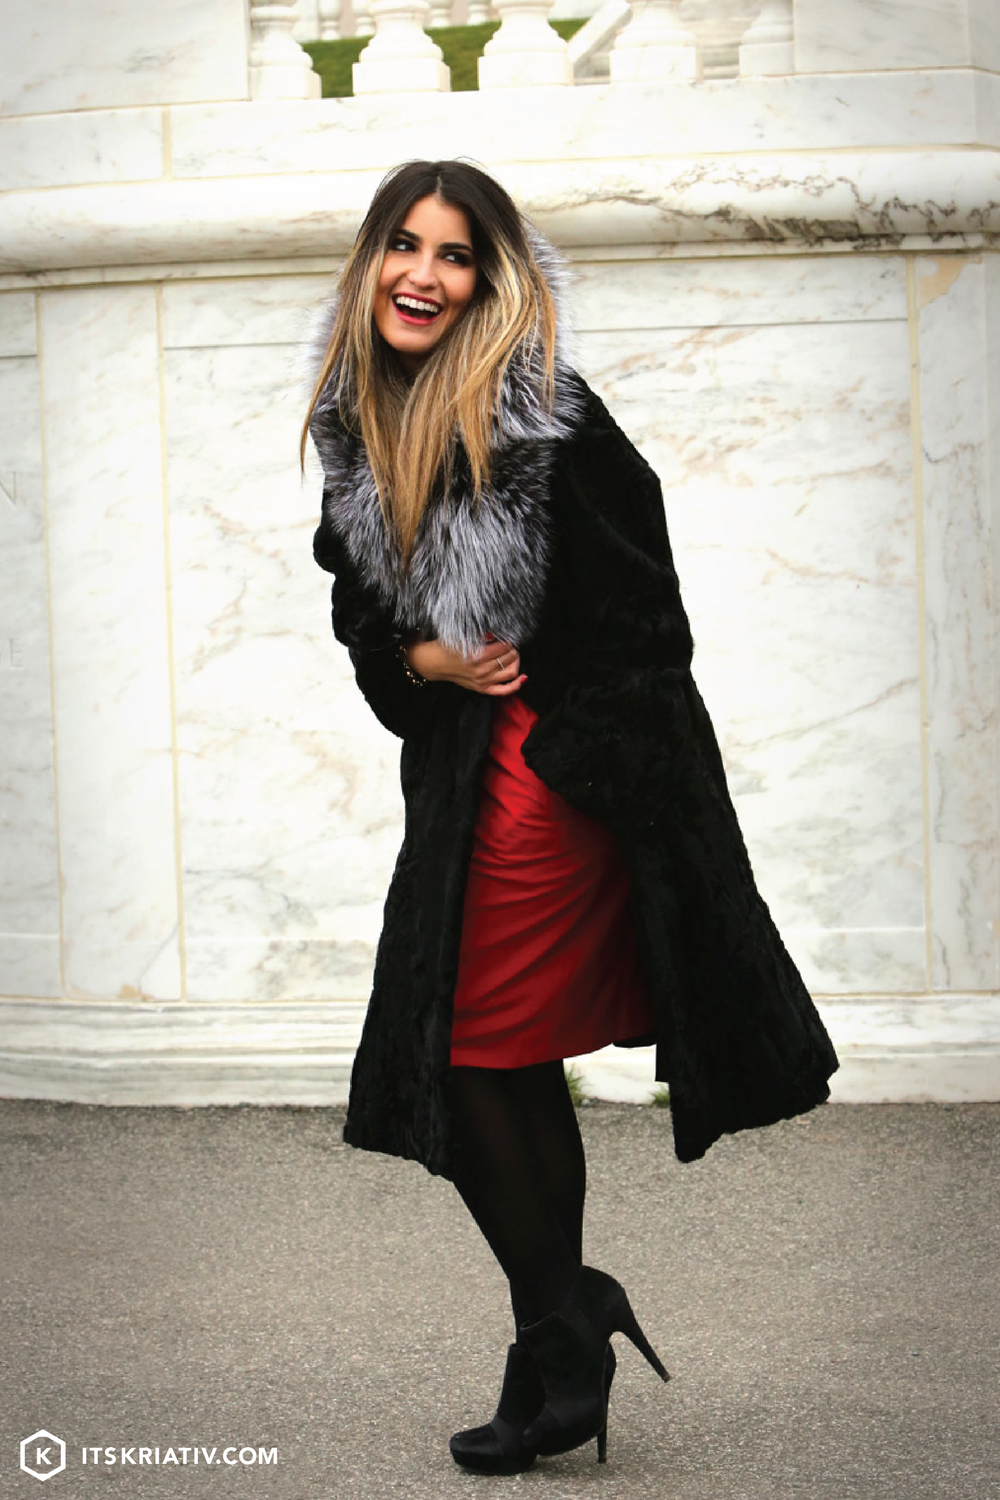 ItsKriativ_Fashion_Fur_Real-07.jpg